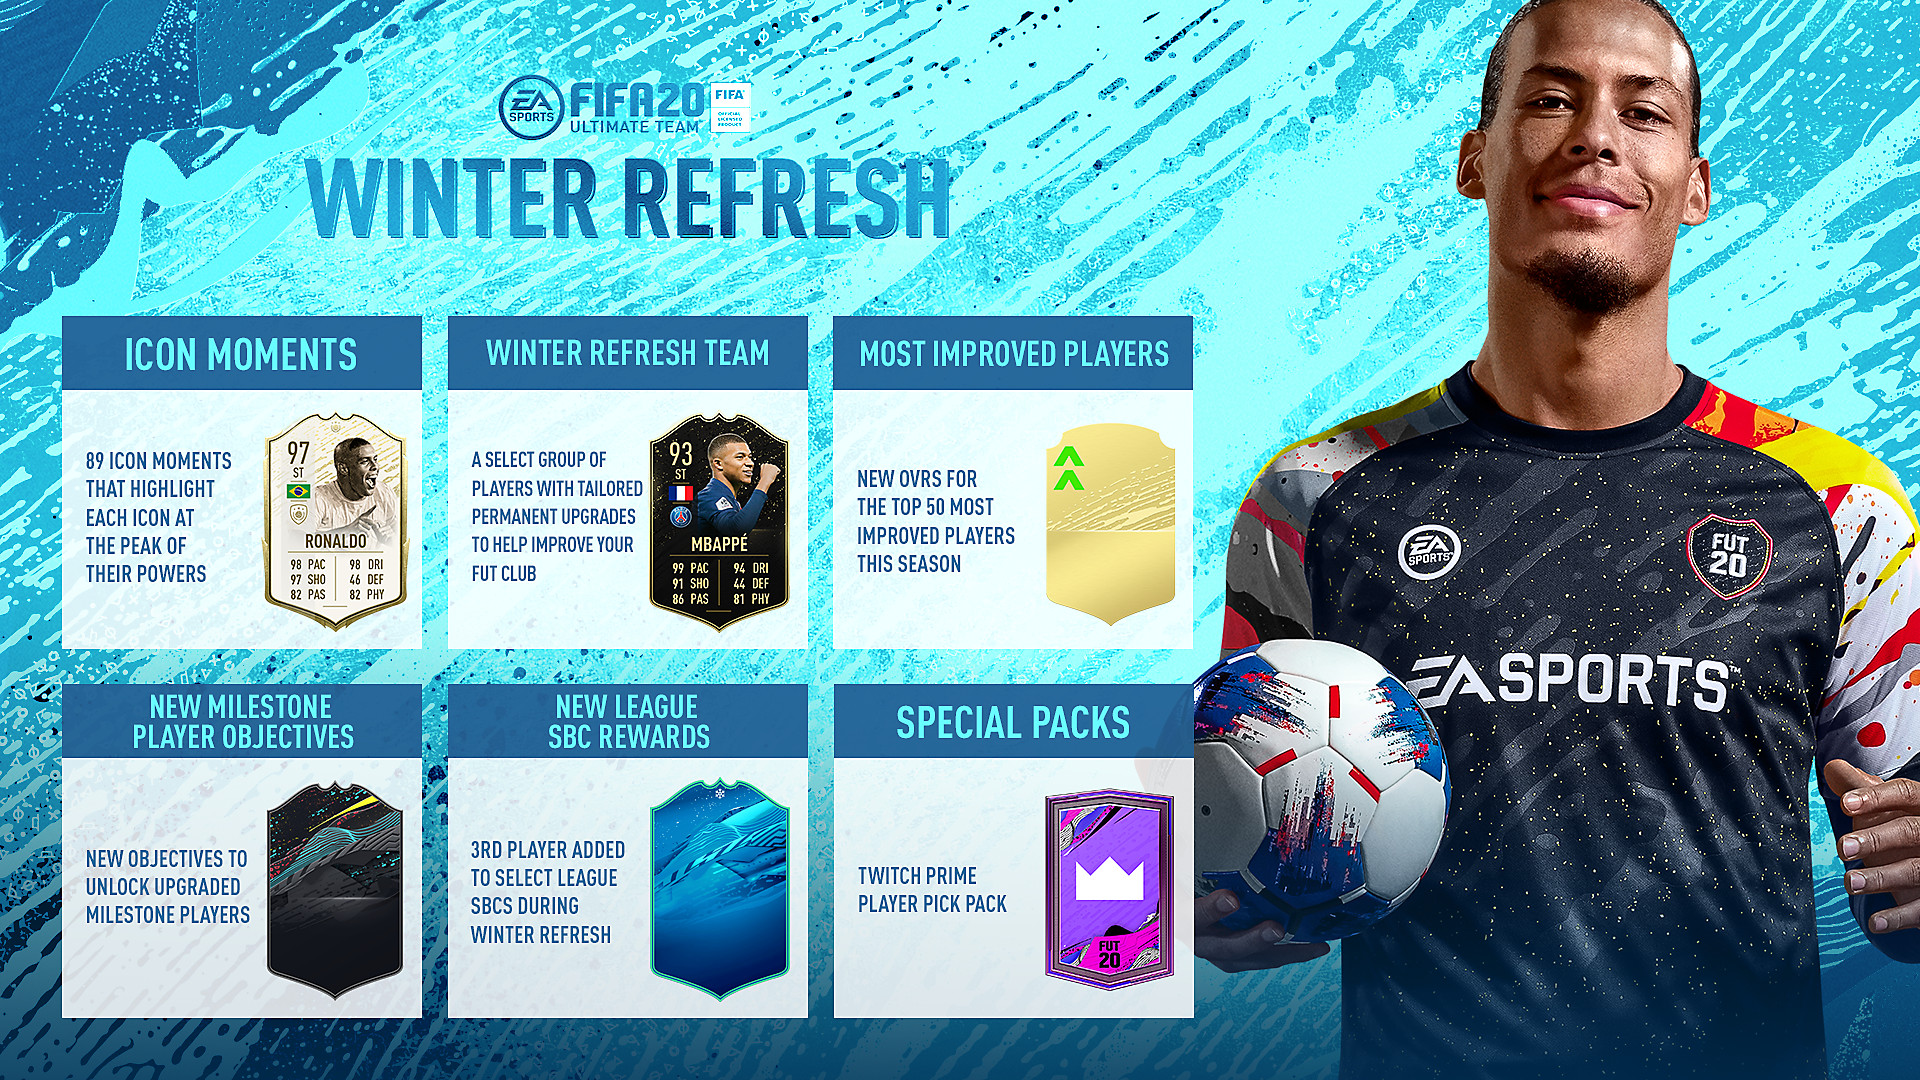 FIFA 20 - Winter Refresh Infographic